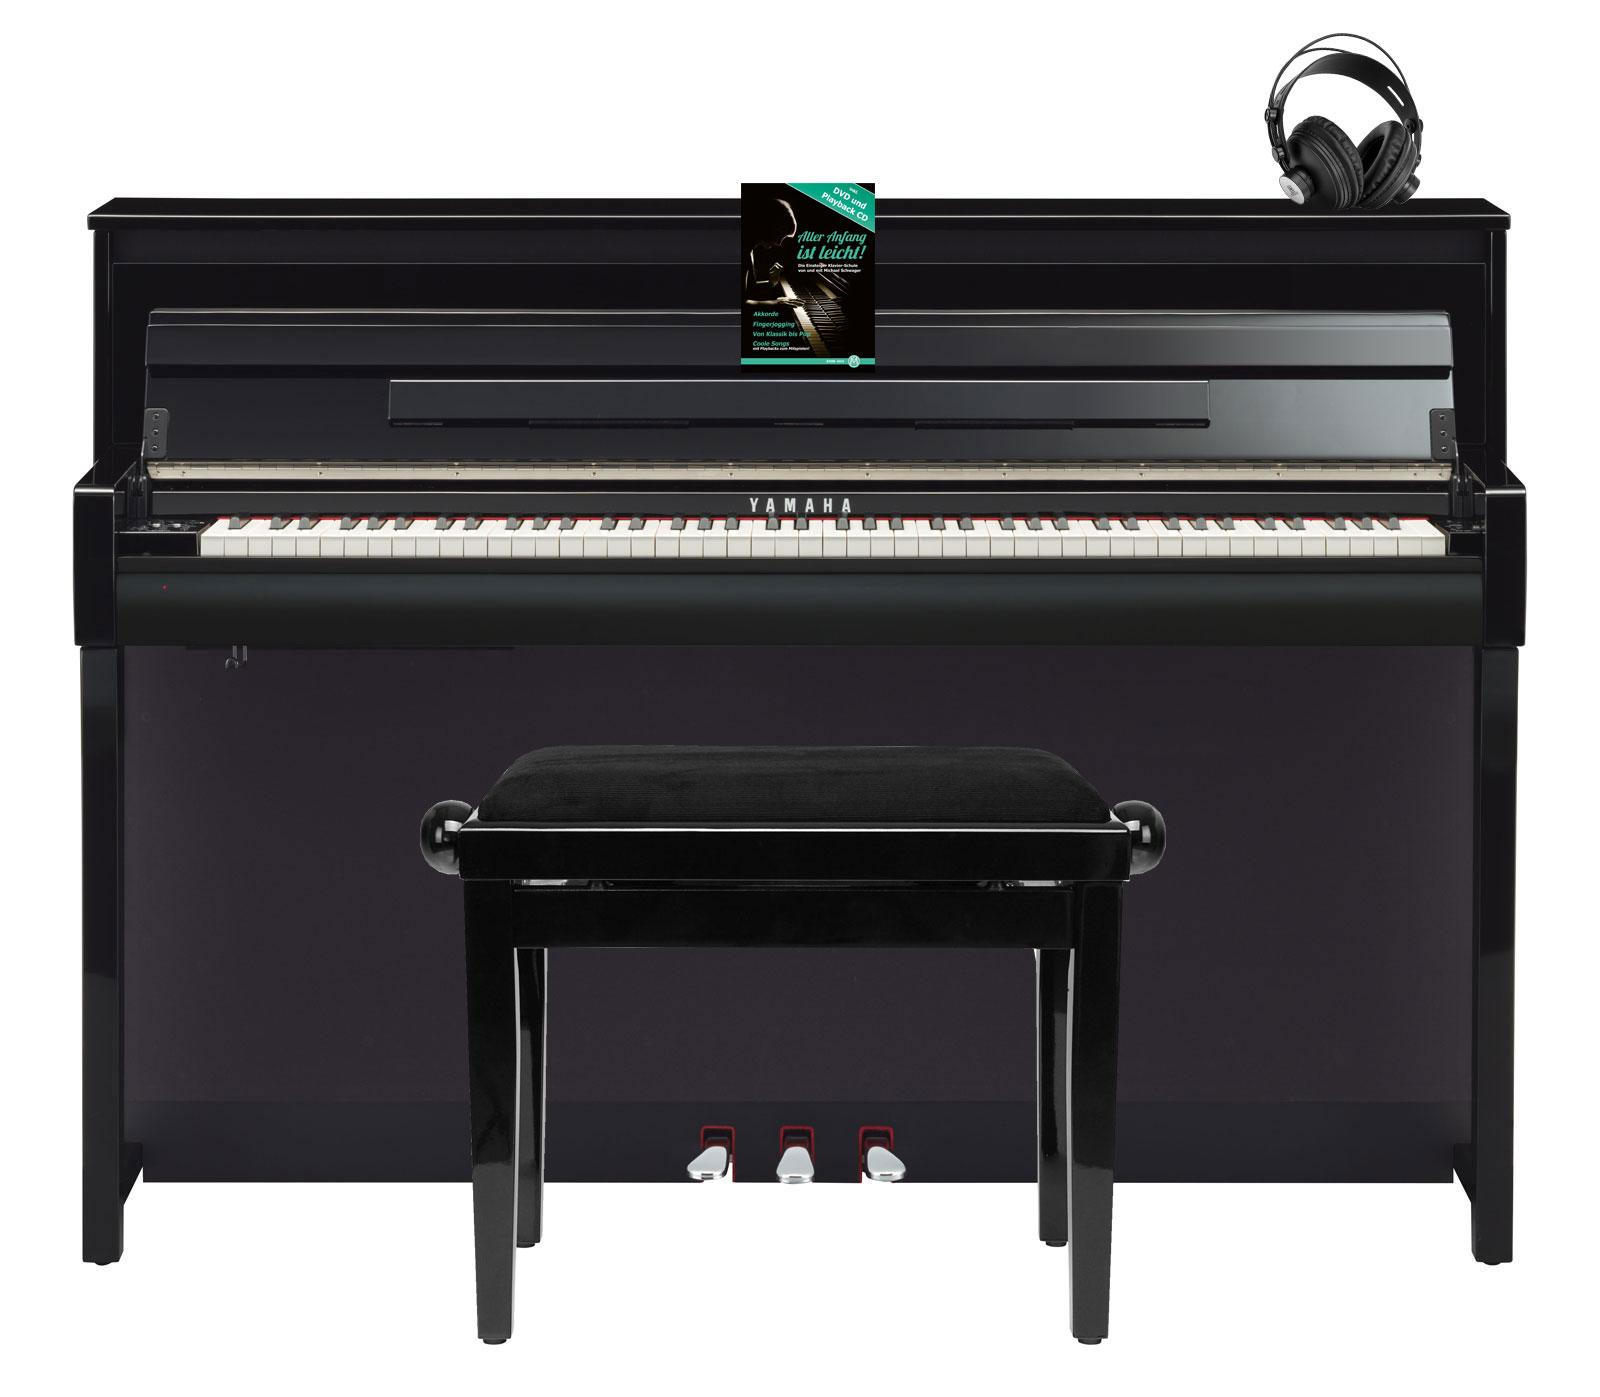 yamaha clp 685 pe digitalpiano schwarz hochgl set mit kopfh rer bank schule. Black Bedroom Furniture Sets. Home Design Ideas